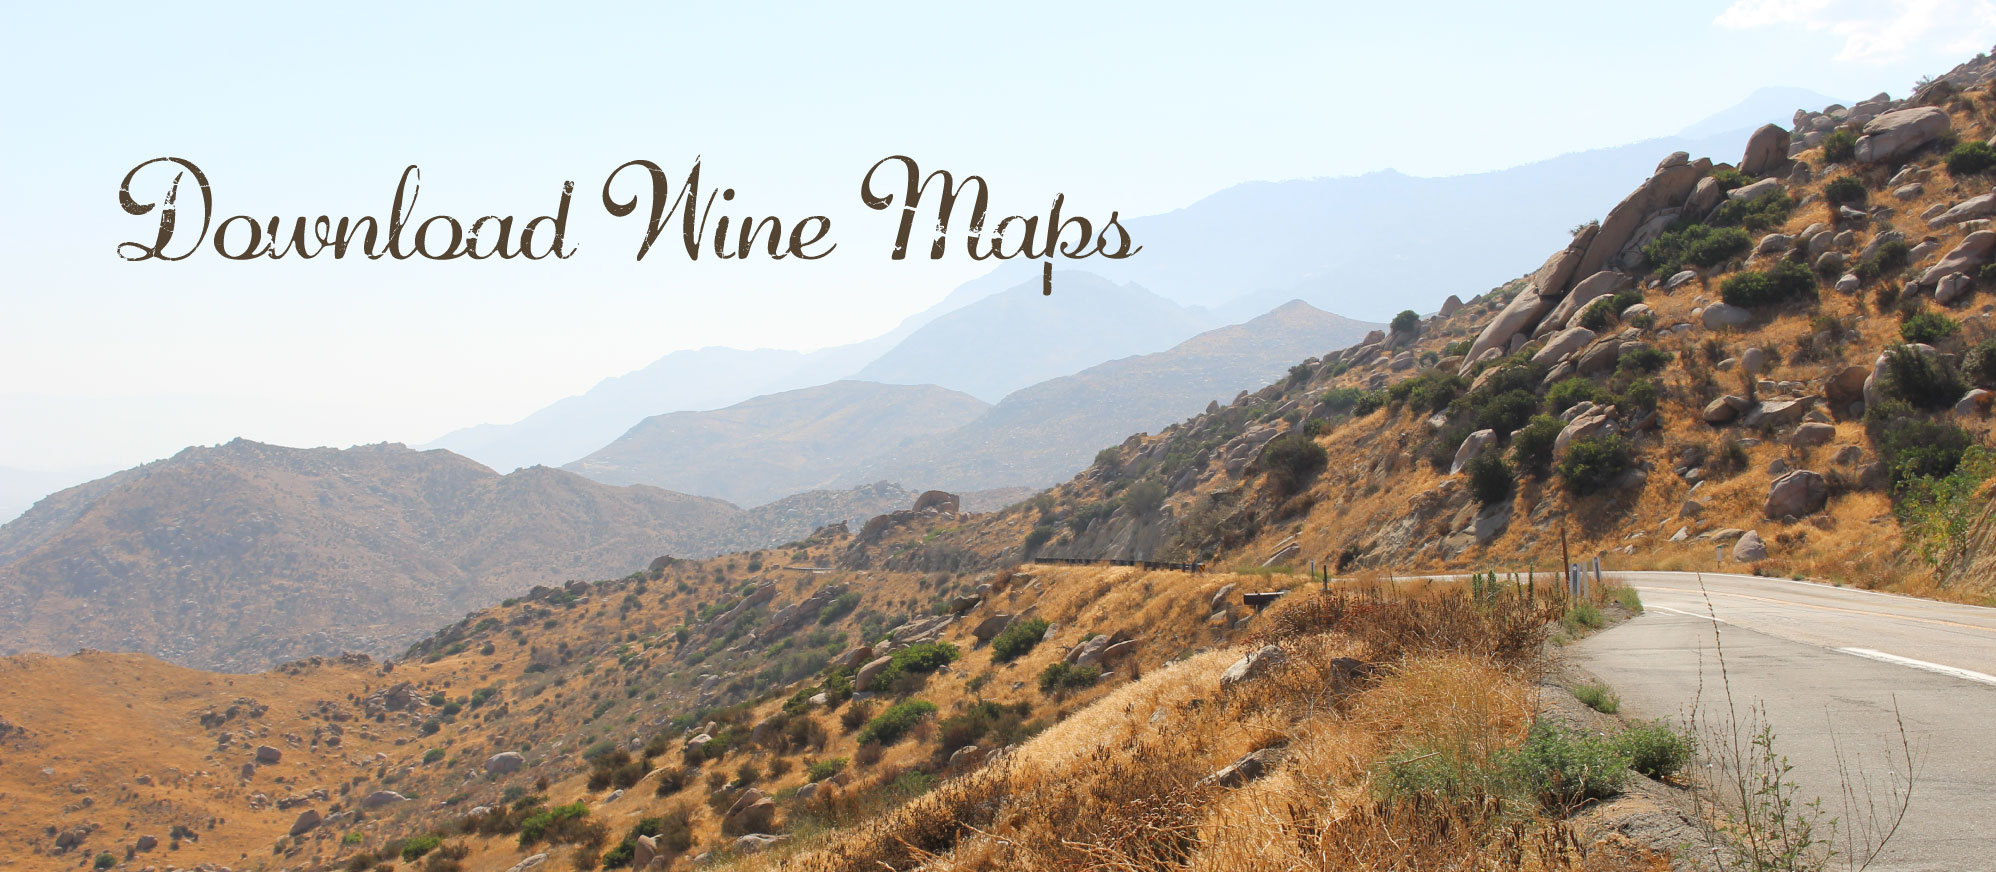 Download Wine Maps